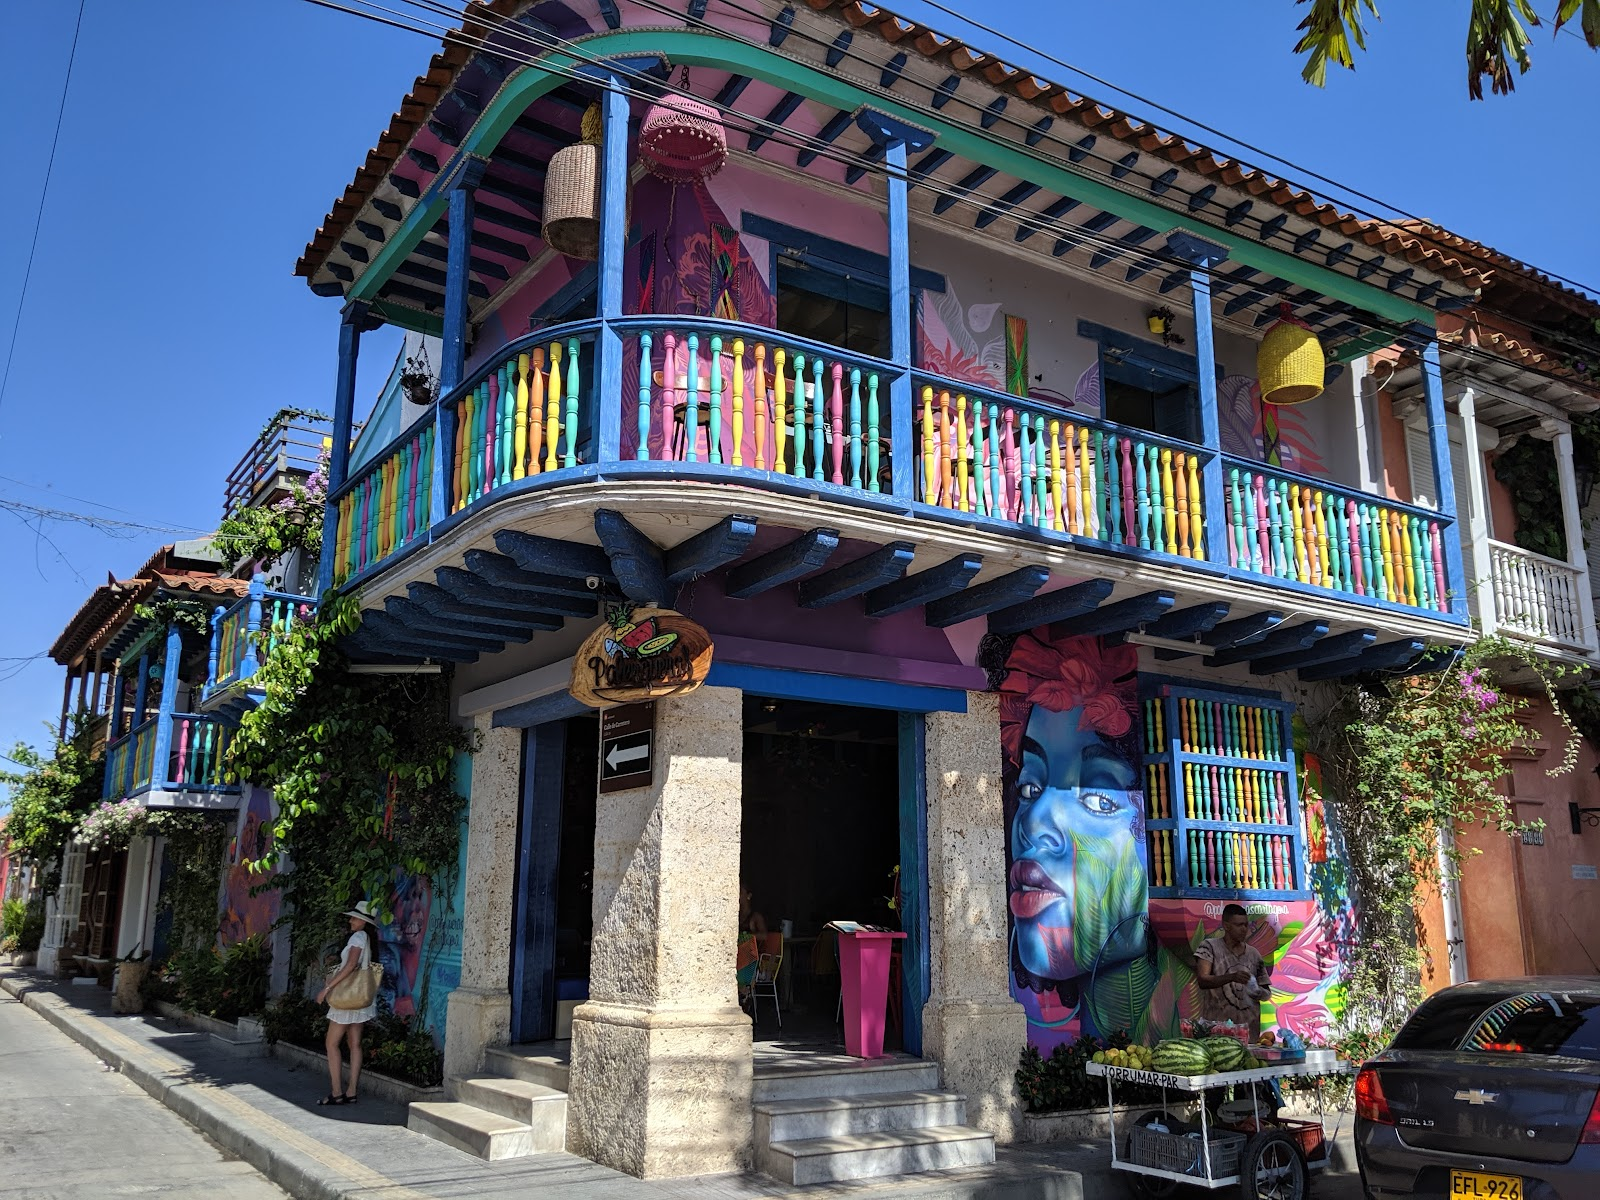 Colorful restaurant in Cartagena, Colombia.